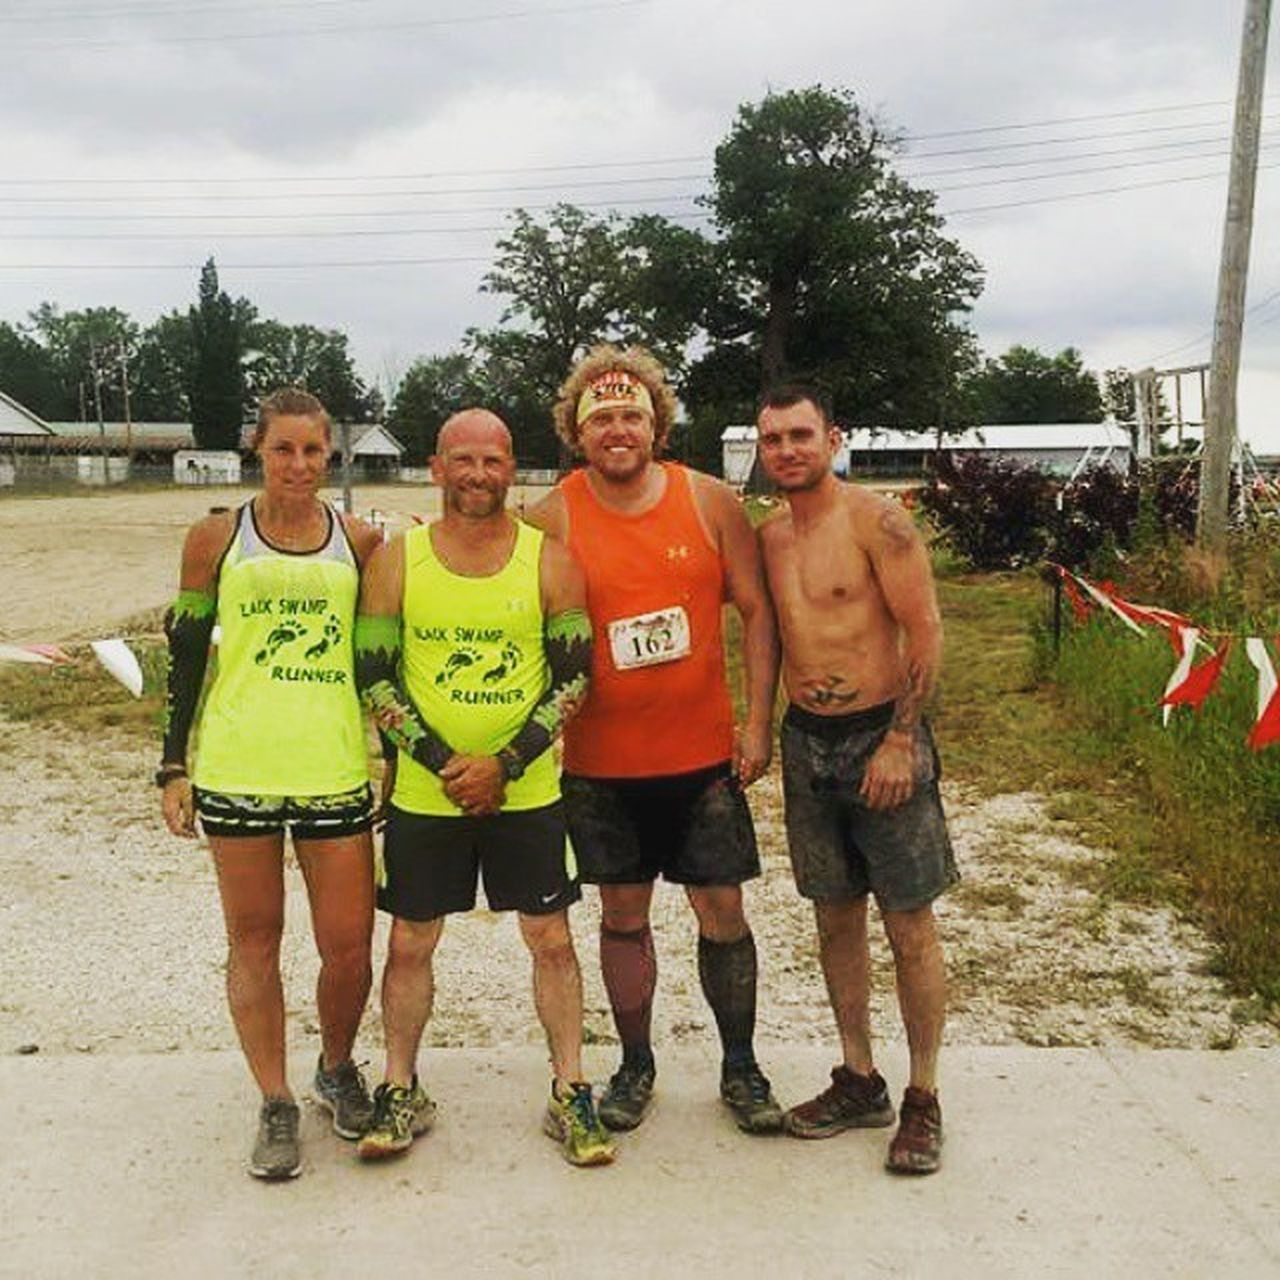 Black swamp dash my 68th OCR. 2 laps. One lap on a closed course with the owners. Great experience, great time, and great friends. Blackswampdash Blackswamprunner Hyletecompeteteam Teamcorepower Eatnuttzo Ocr Ocrunited Ohio Oakharbor Buffalo Wnyocrfreaks 2XU Cepcompression Reebok Hulkstillrules Hulkamania Ocraddict